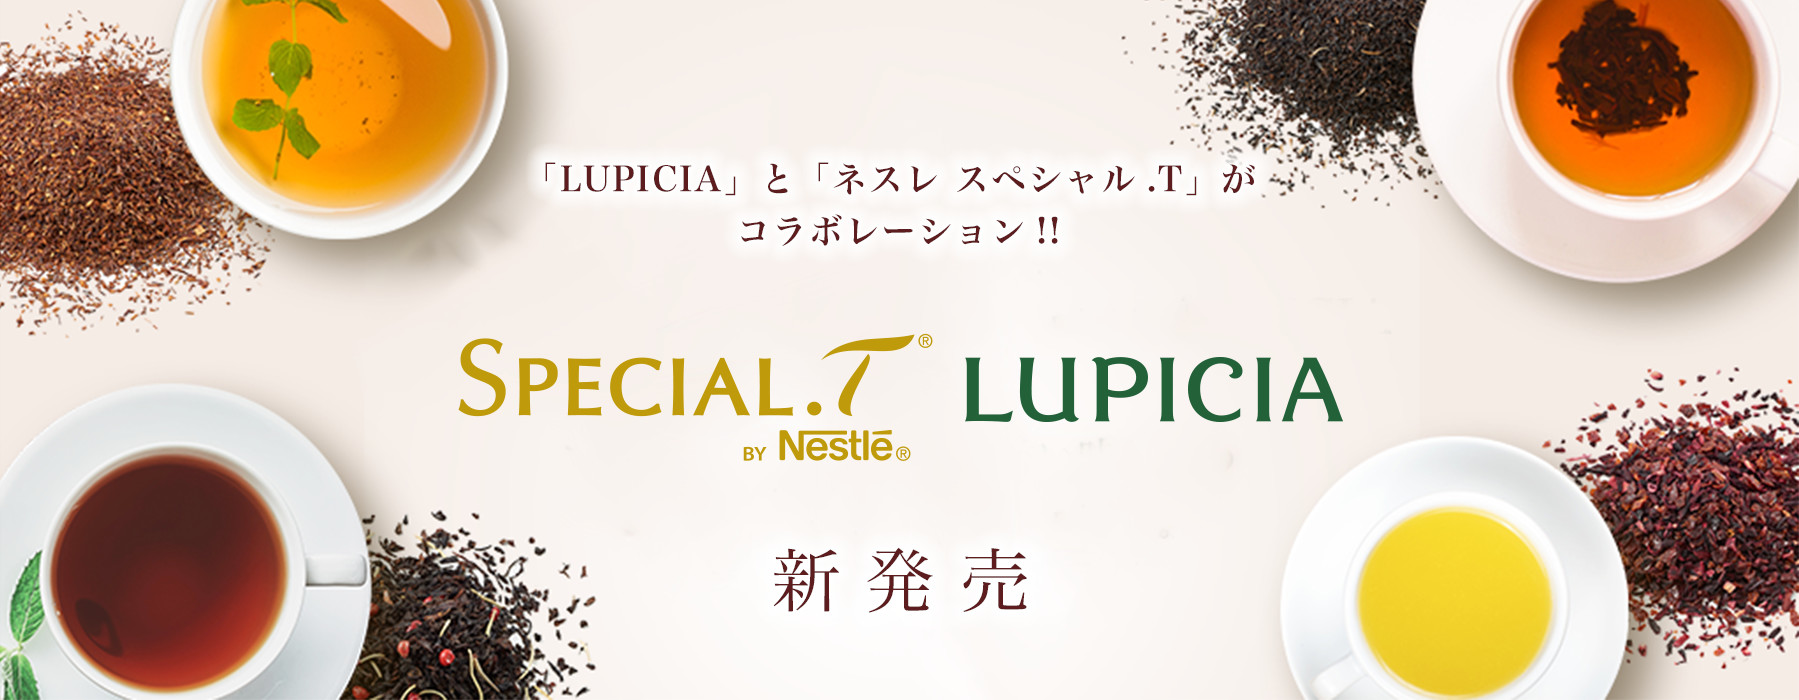 「LUPICIA」と「ネスレ スペシャル.T」がコラボレーション!! Special.T blended by LUPICIA 新発売!!